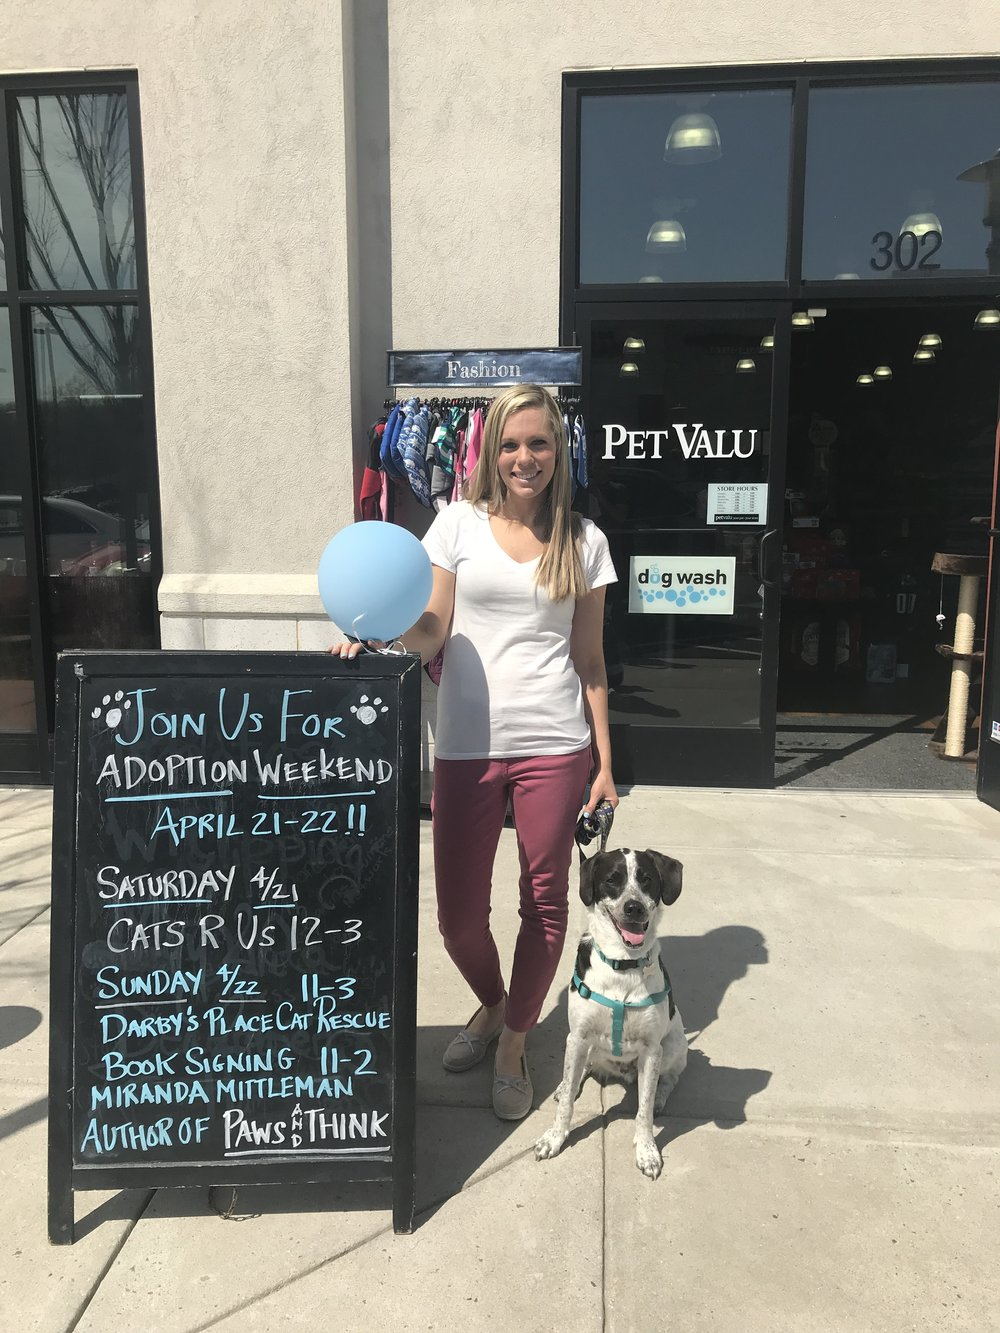 Pet Valu Adoption Event